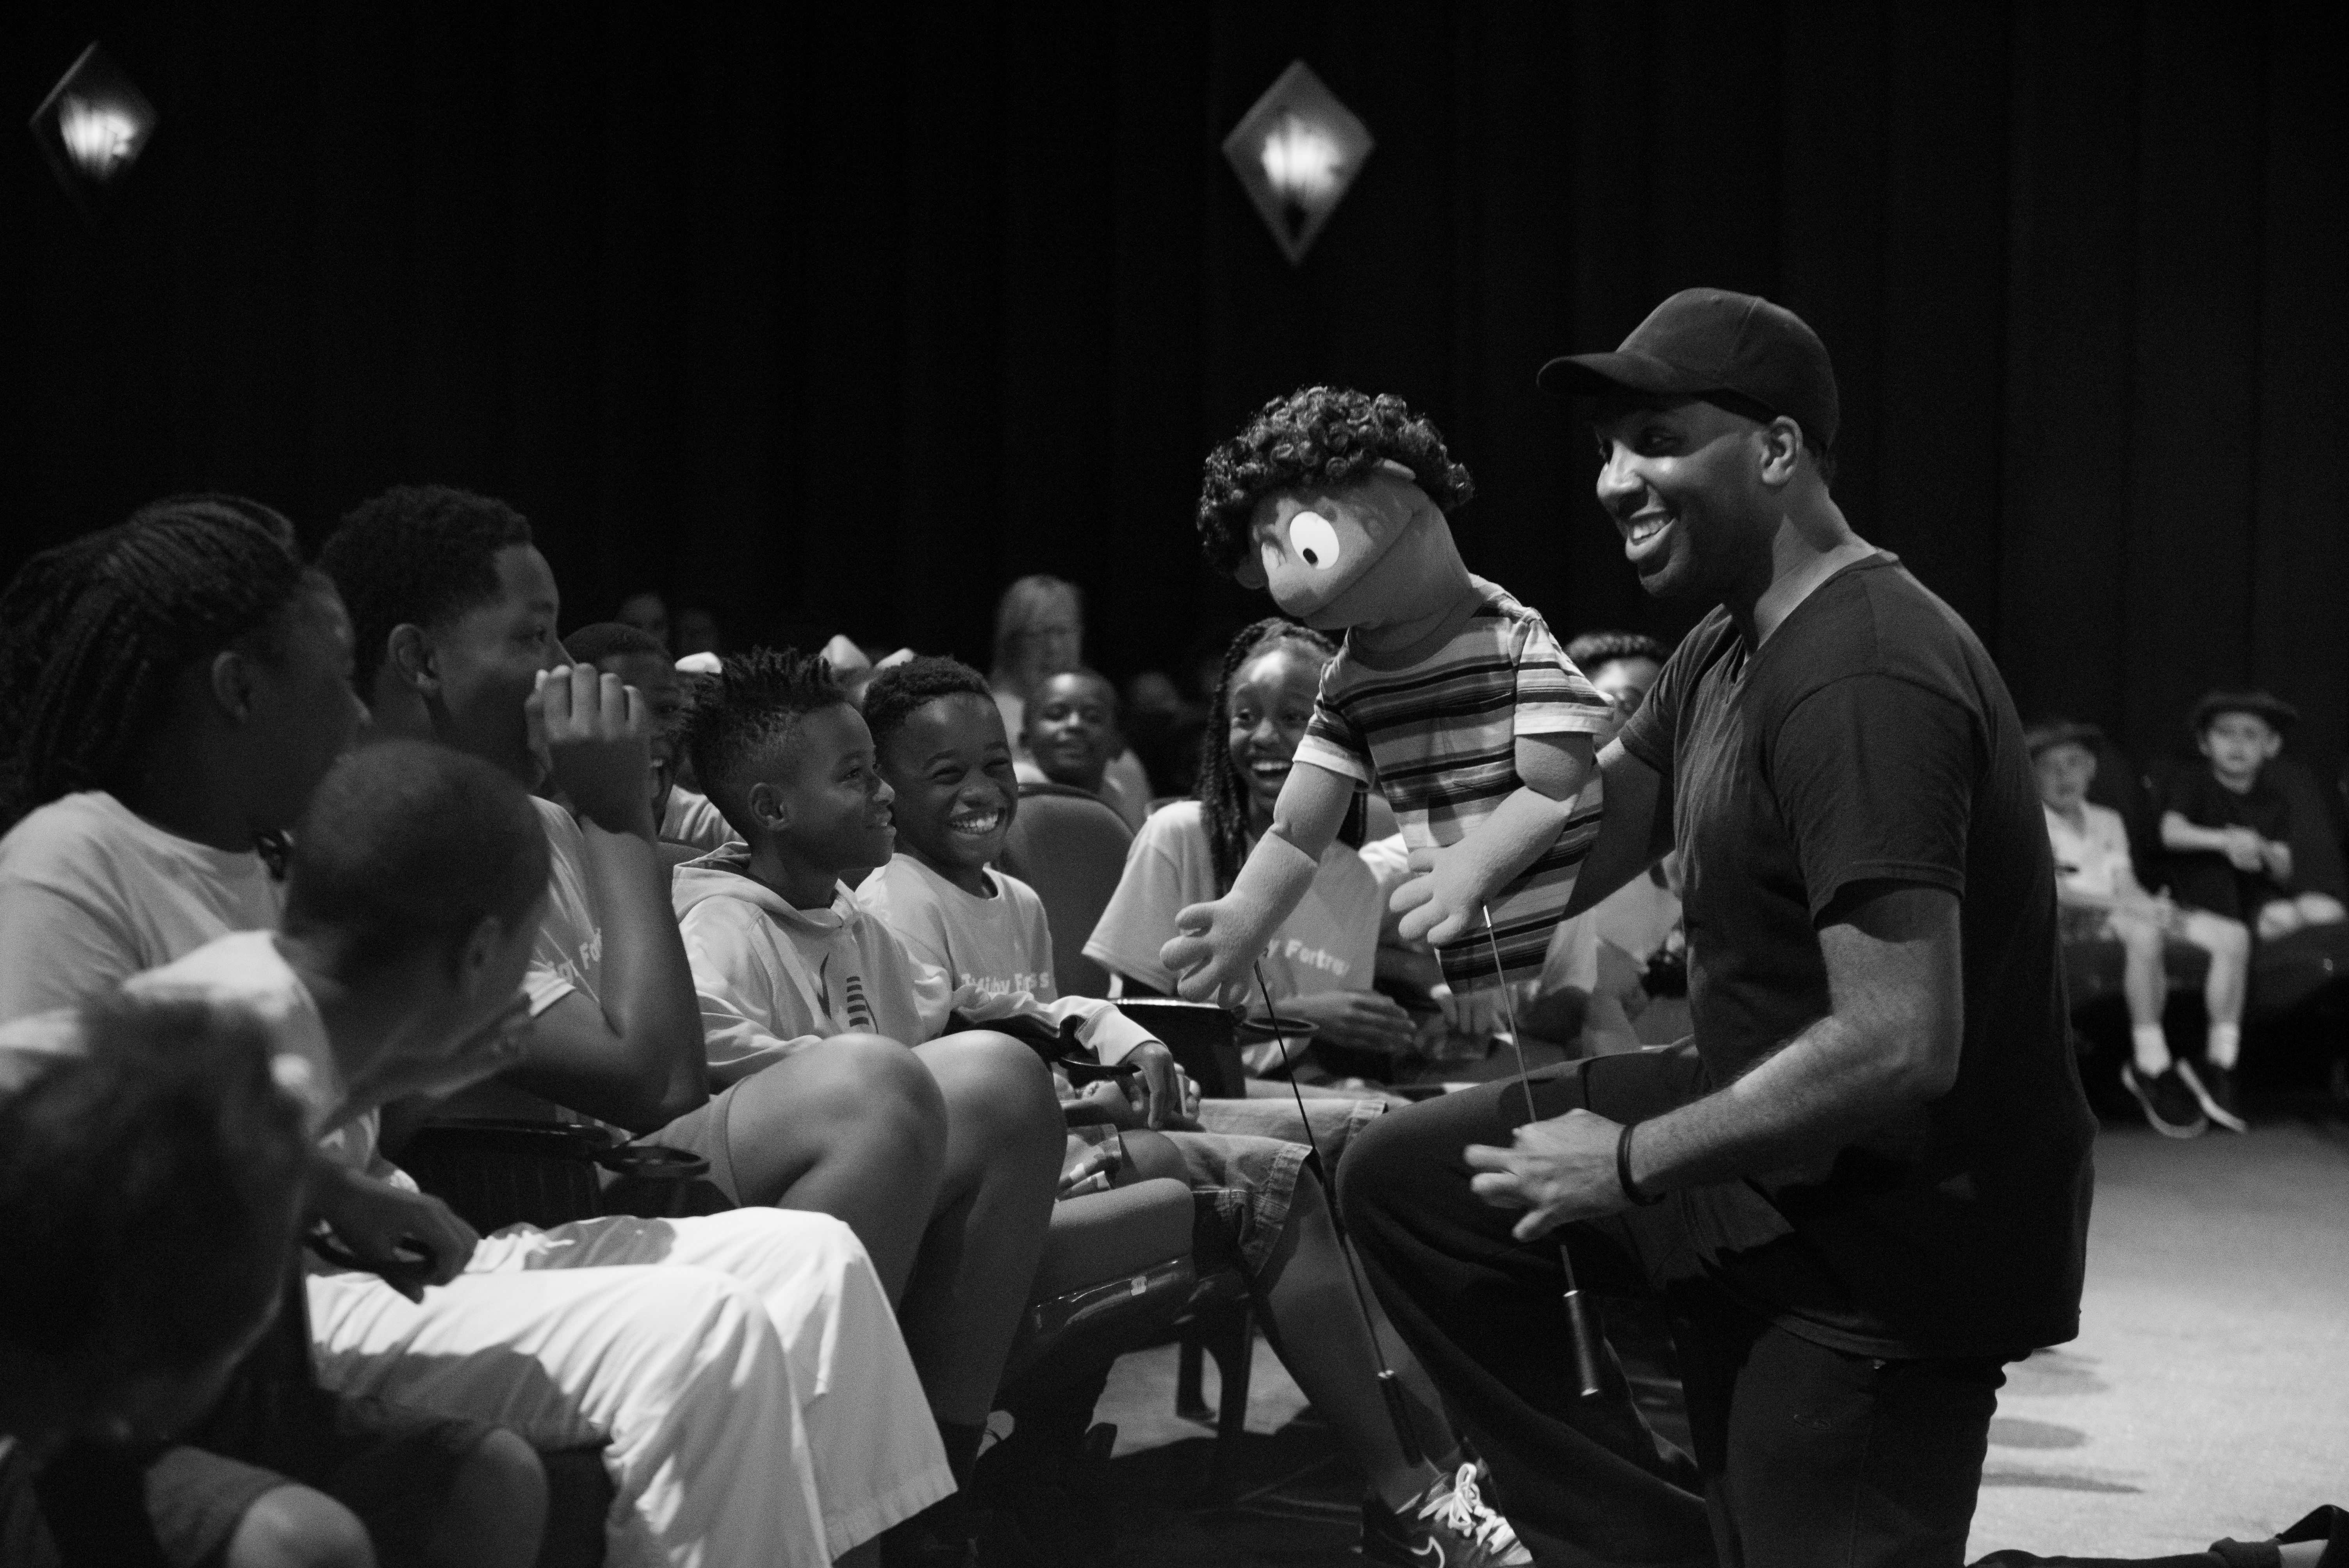 Story Time with Jerry & The UpBeats